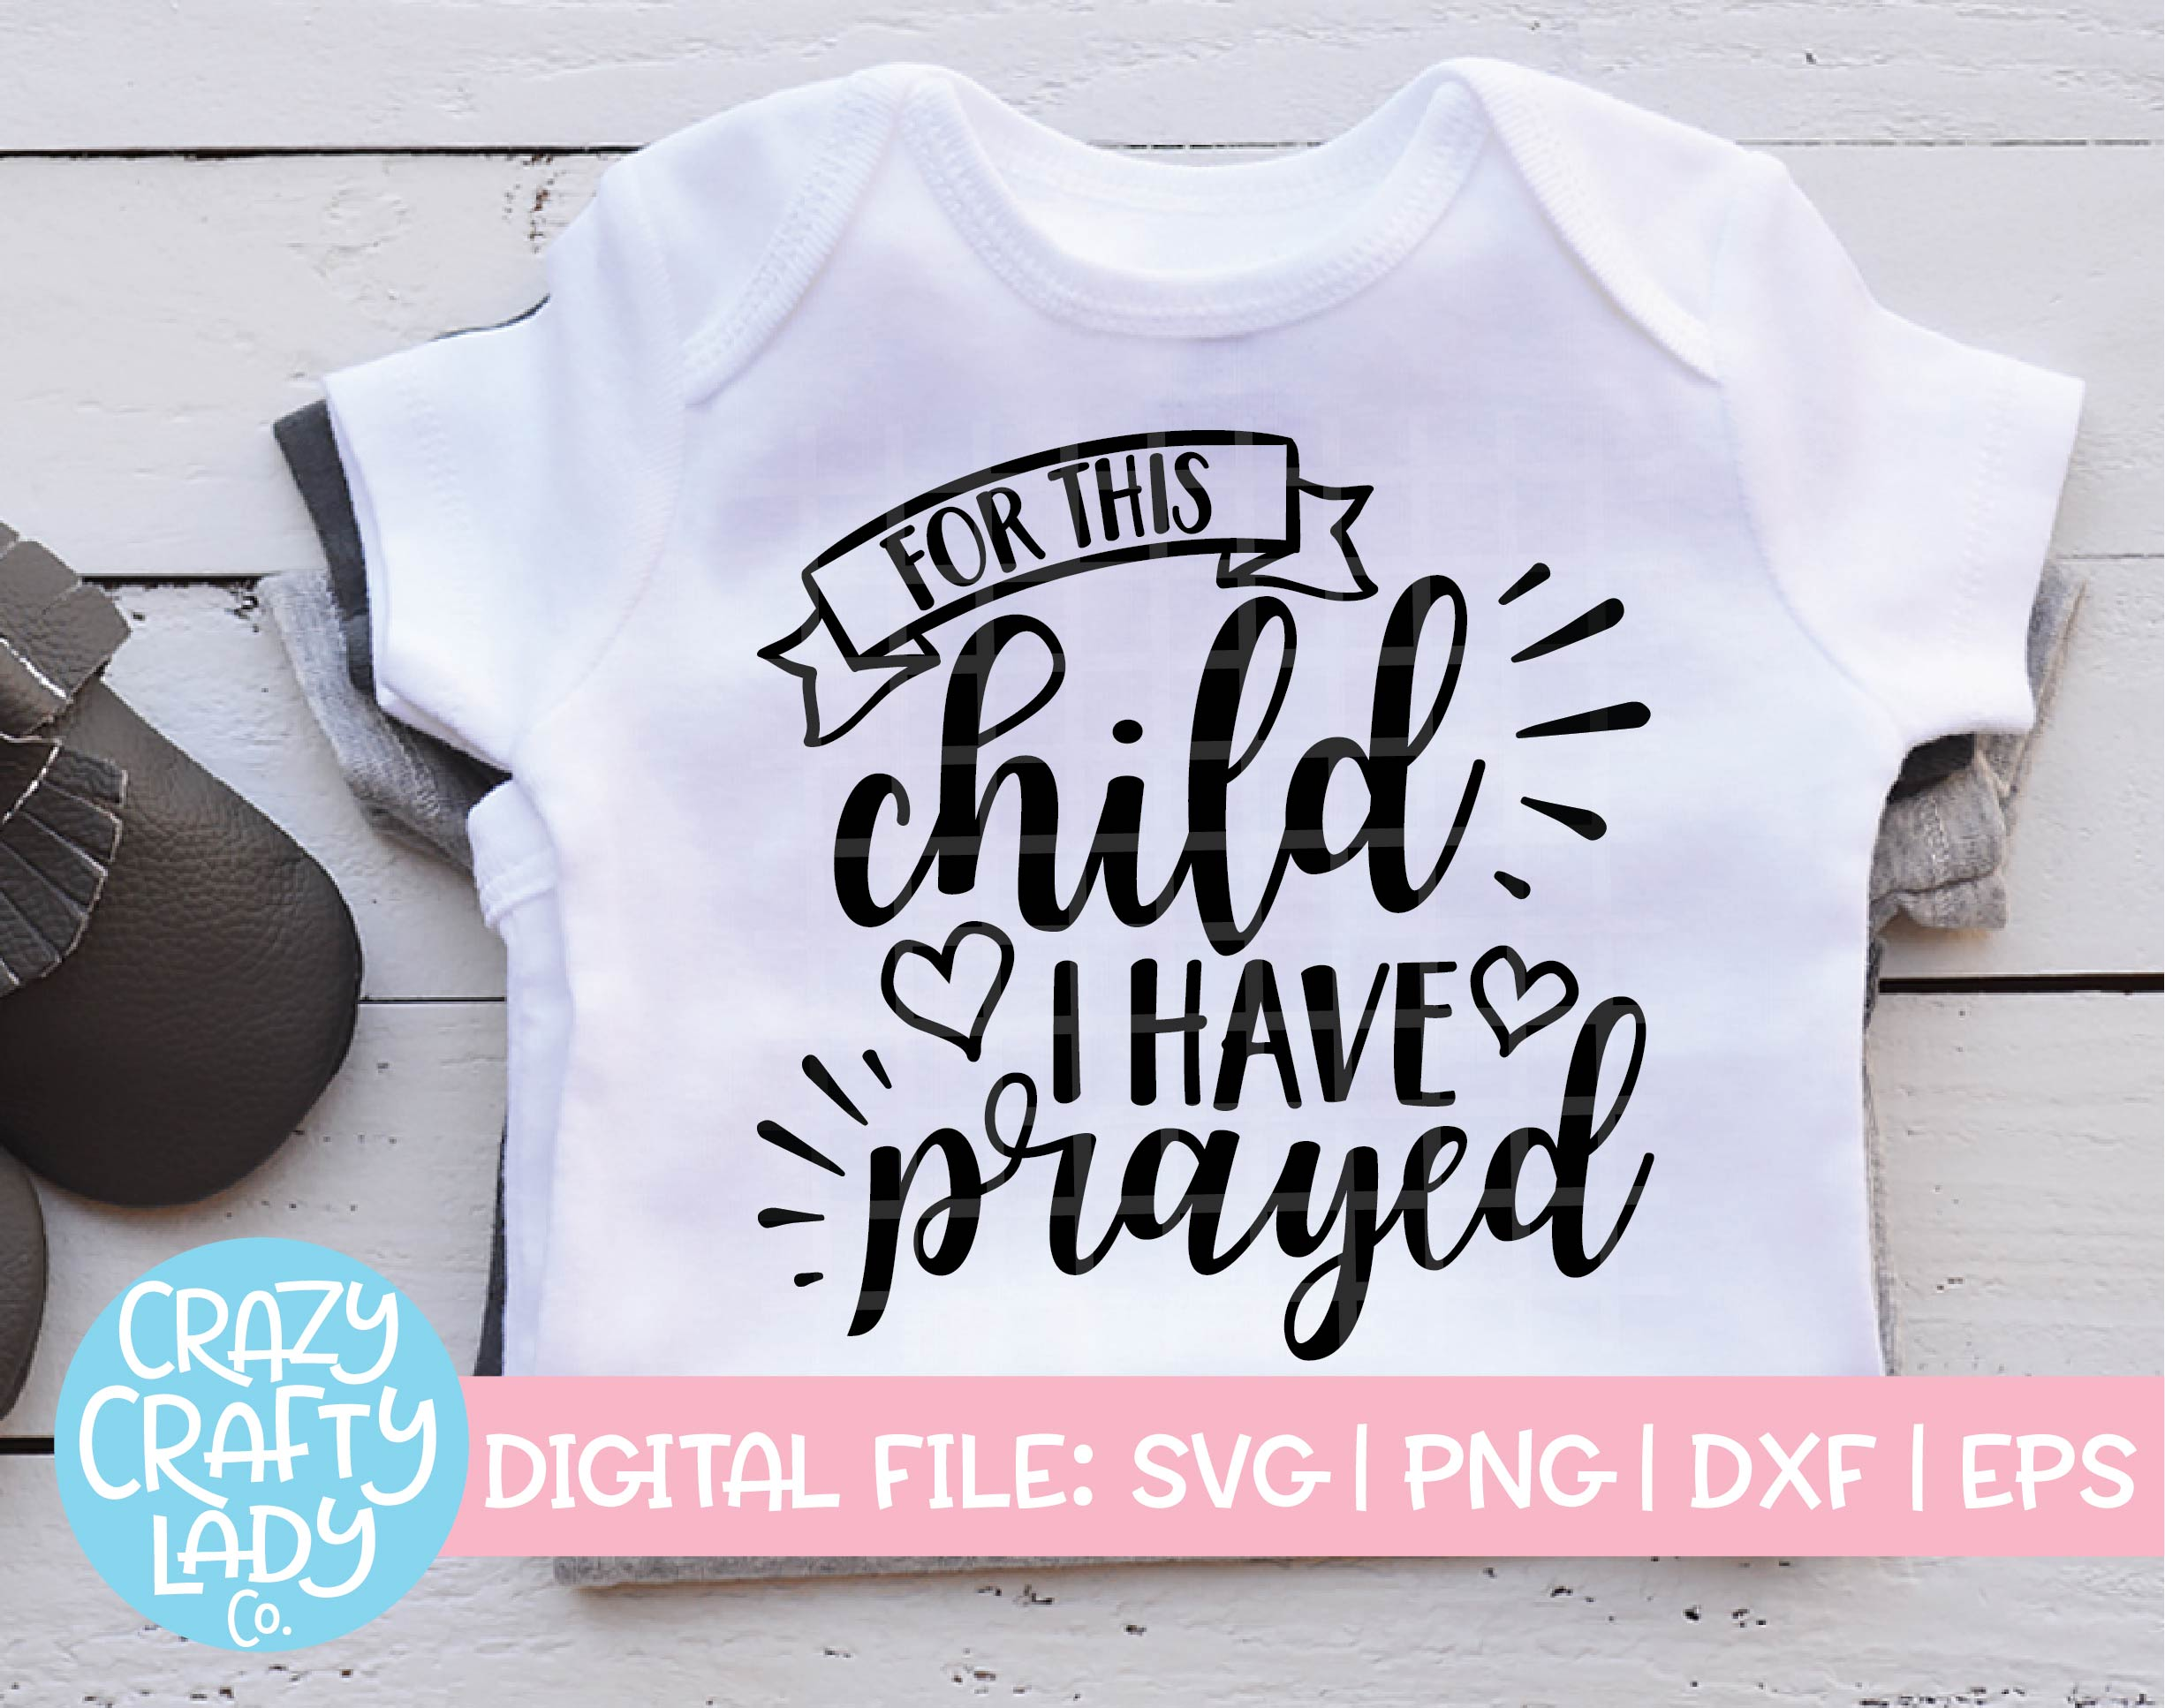 For This Child I Have Prayed Svg Cut File Crazy Crafty Lady Co